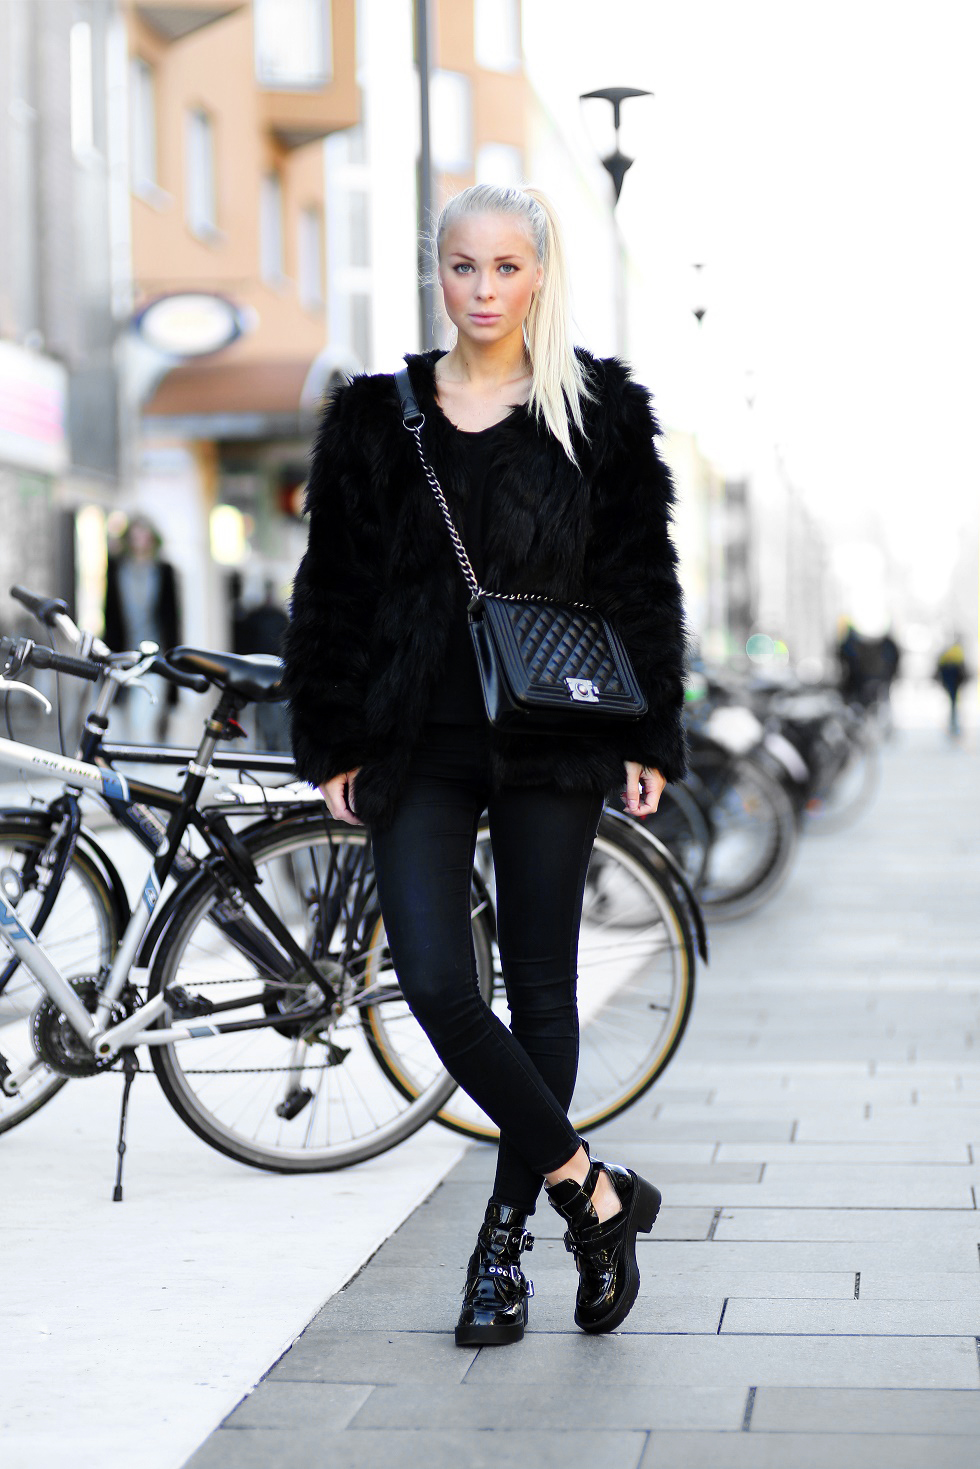 72a25a007790 Victoria Tornegren is wearing a black fluffy coat from Ch-icy.